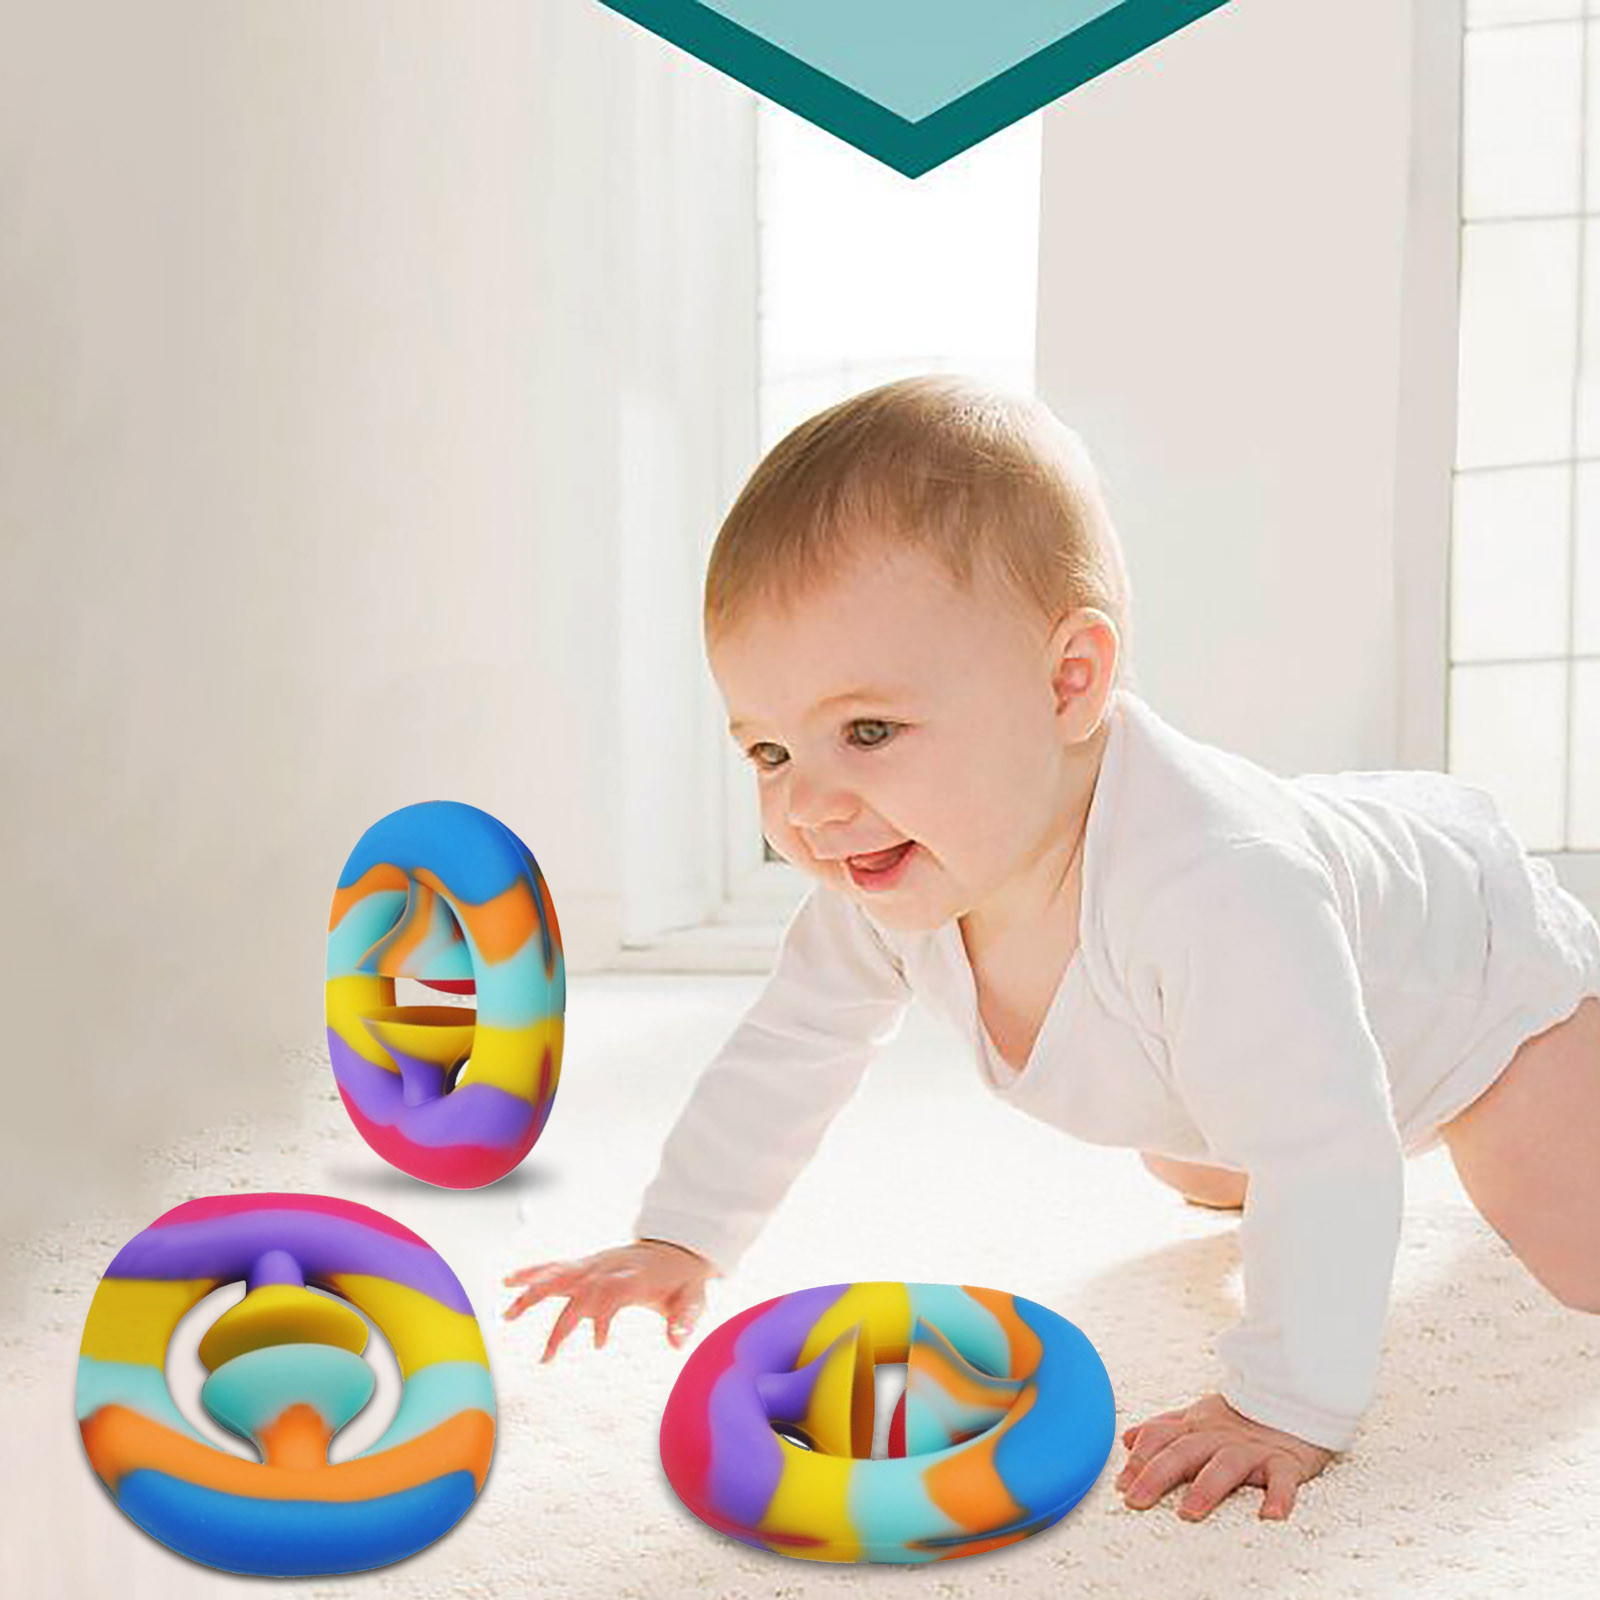 Fidget-Toy Hand-Grip Pinching-Ball Autism Extrusion-Sensory Needs-Stress Reliever Anxiety img3